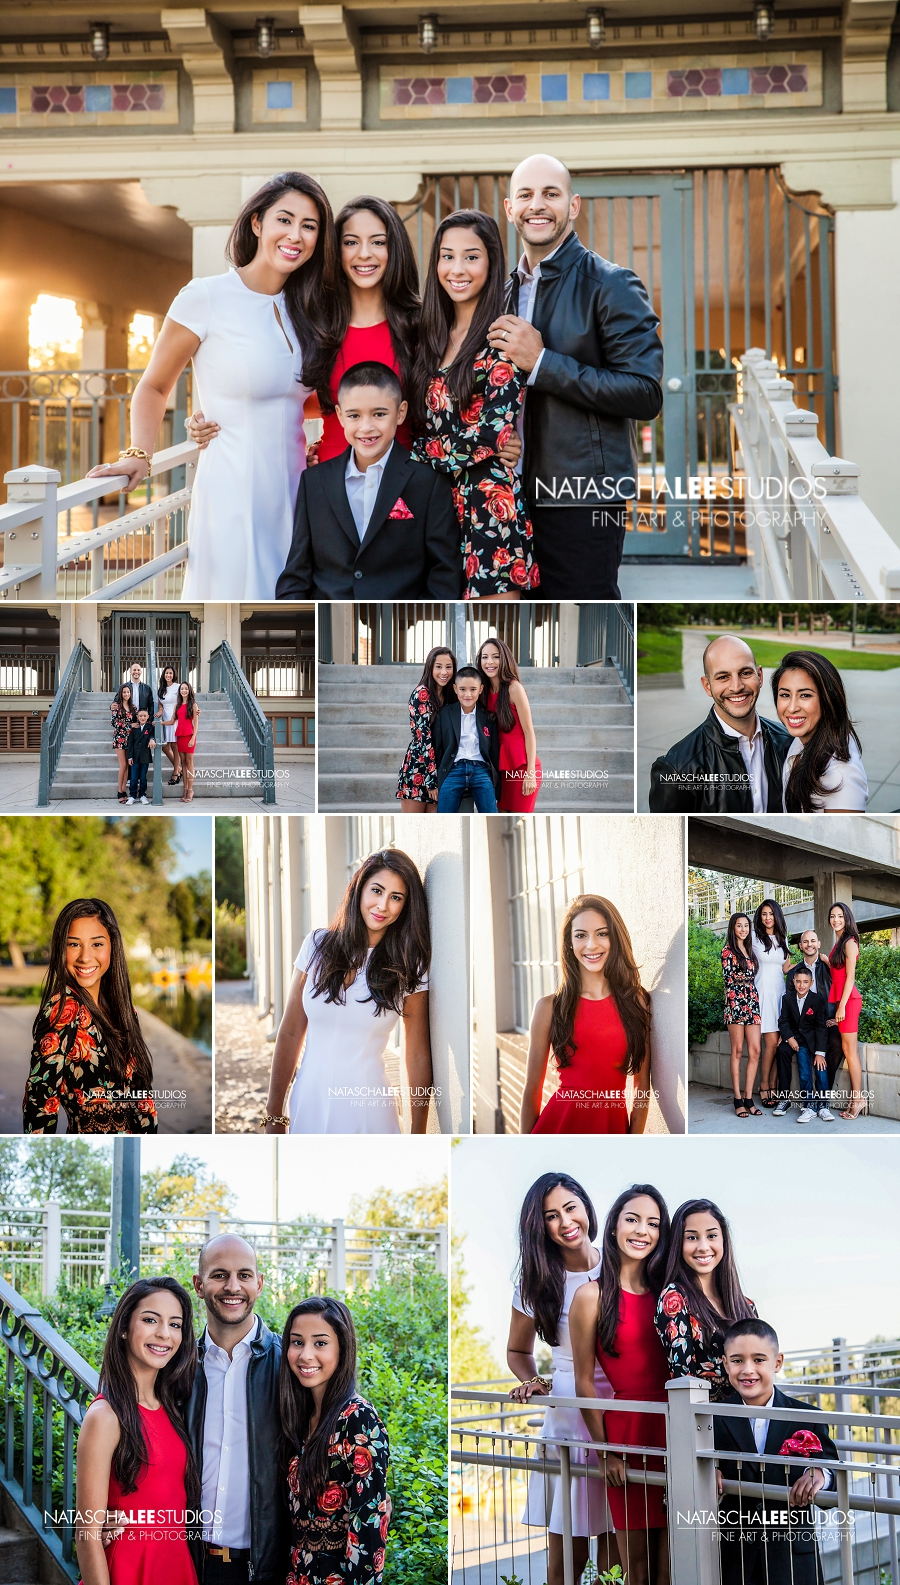 Denver Family Portraits - Stylish Urban Photos at Washington Park - Client Interview